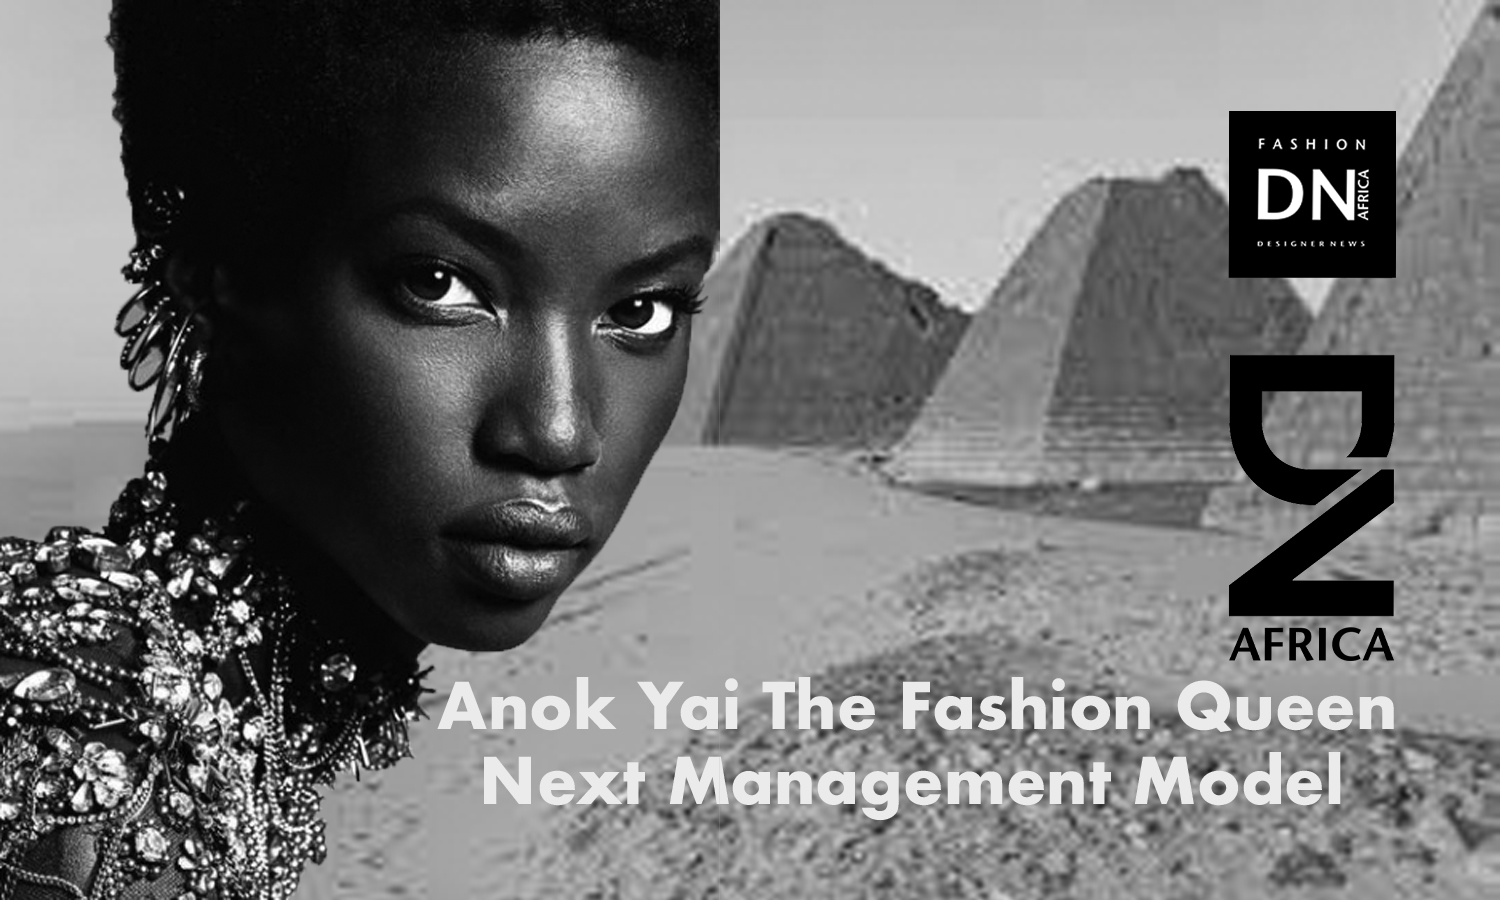 AFRICAN FASHION STYLE MAGAZINE - Anok-Yai-The-Fashion-Queen American model of Sudanese origin - Next Management Model - Photographer DAN NGU - Media Partner DN AFRICA - STUDIO 24 NIGERIA - STUDIO 24 INTERNATIONAL - Ifeanyi Christopher Oputa MD AND CEO OF COLVI LIMITED AND STUDIO 24 - CHEVEUX CHERIE and CHEVEUX CHERIE STUDIO BY MARIEME DUBOZ- Fashion Editor Nahomie NOOR COULIBALY